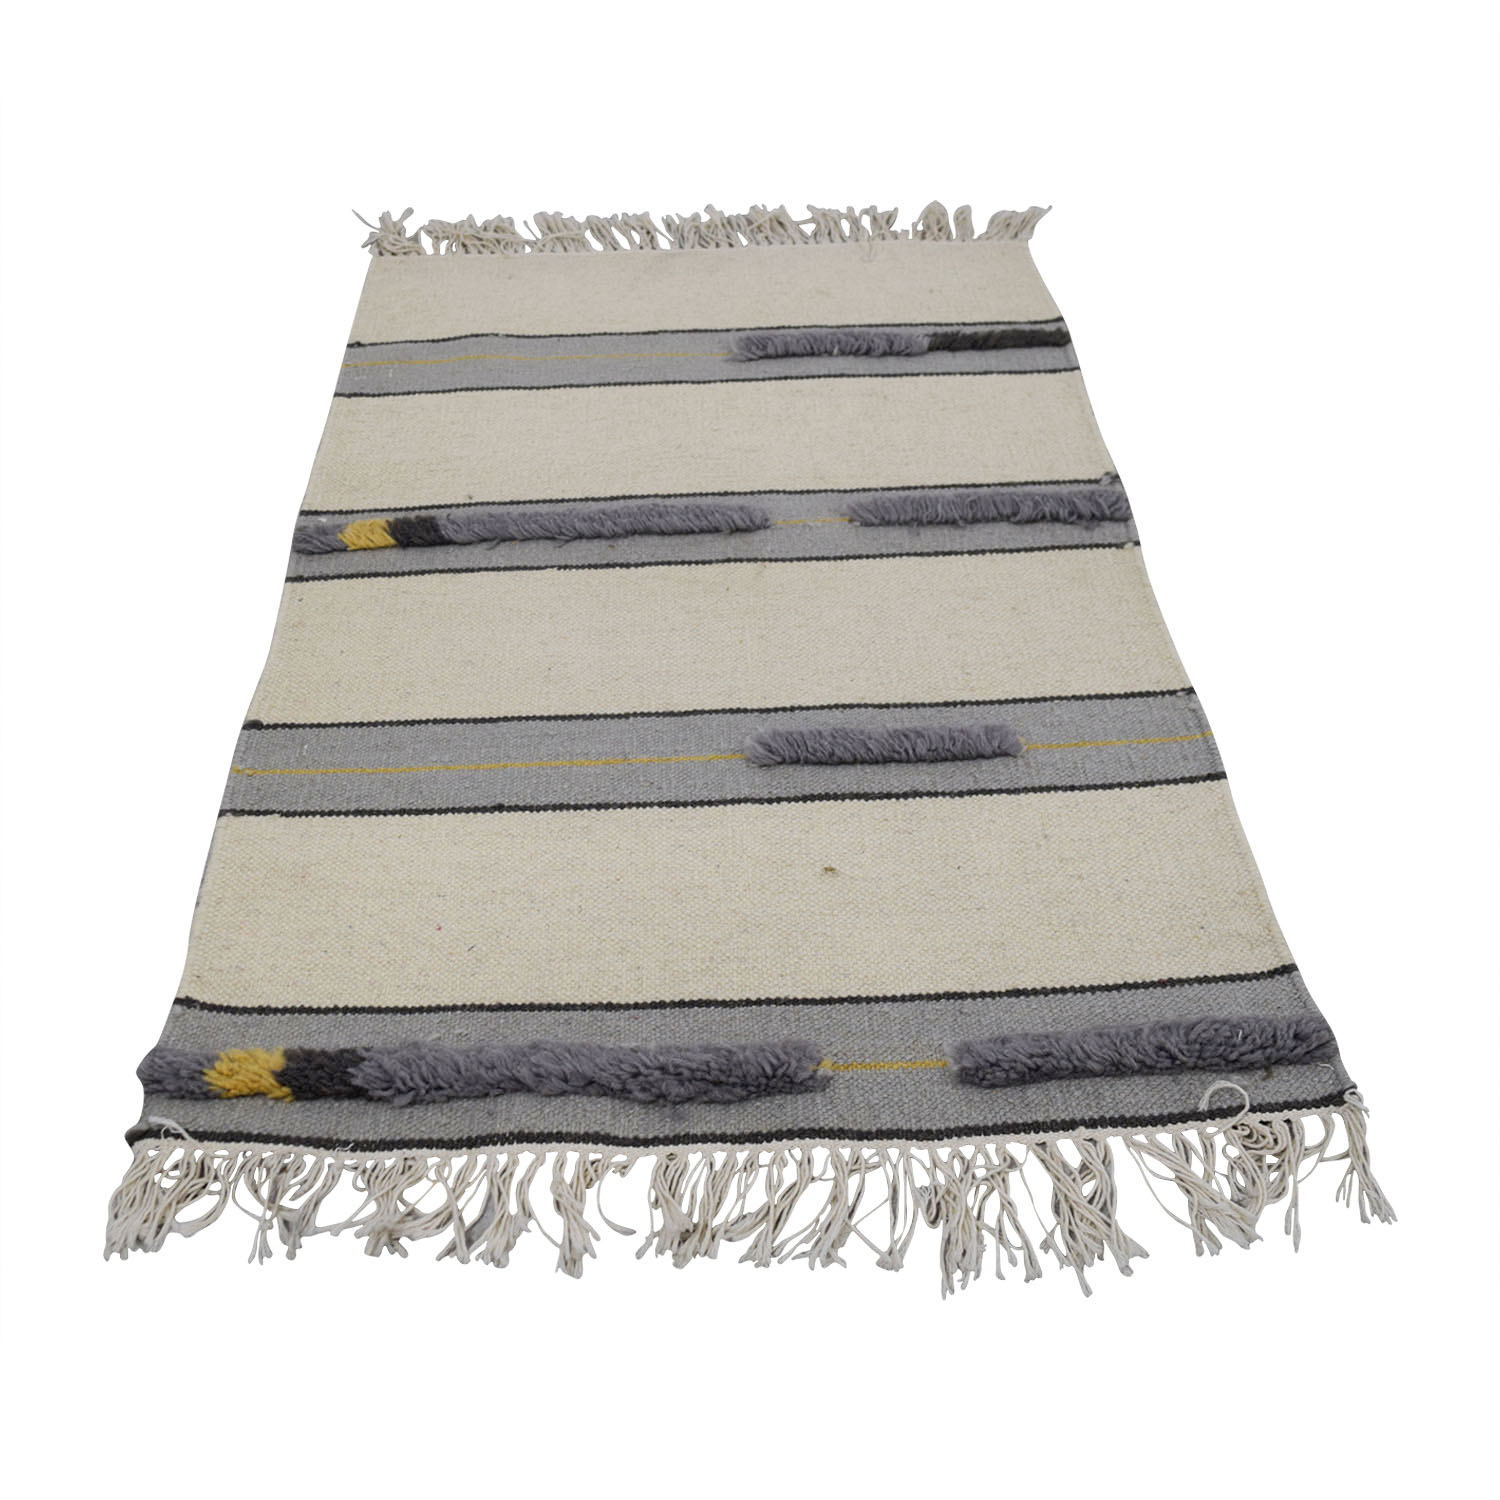 Obeetee Obeetee Grey and Beige Rug Decor